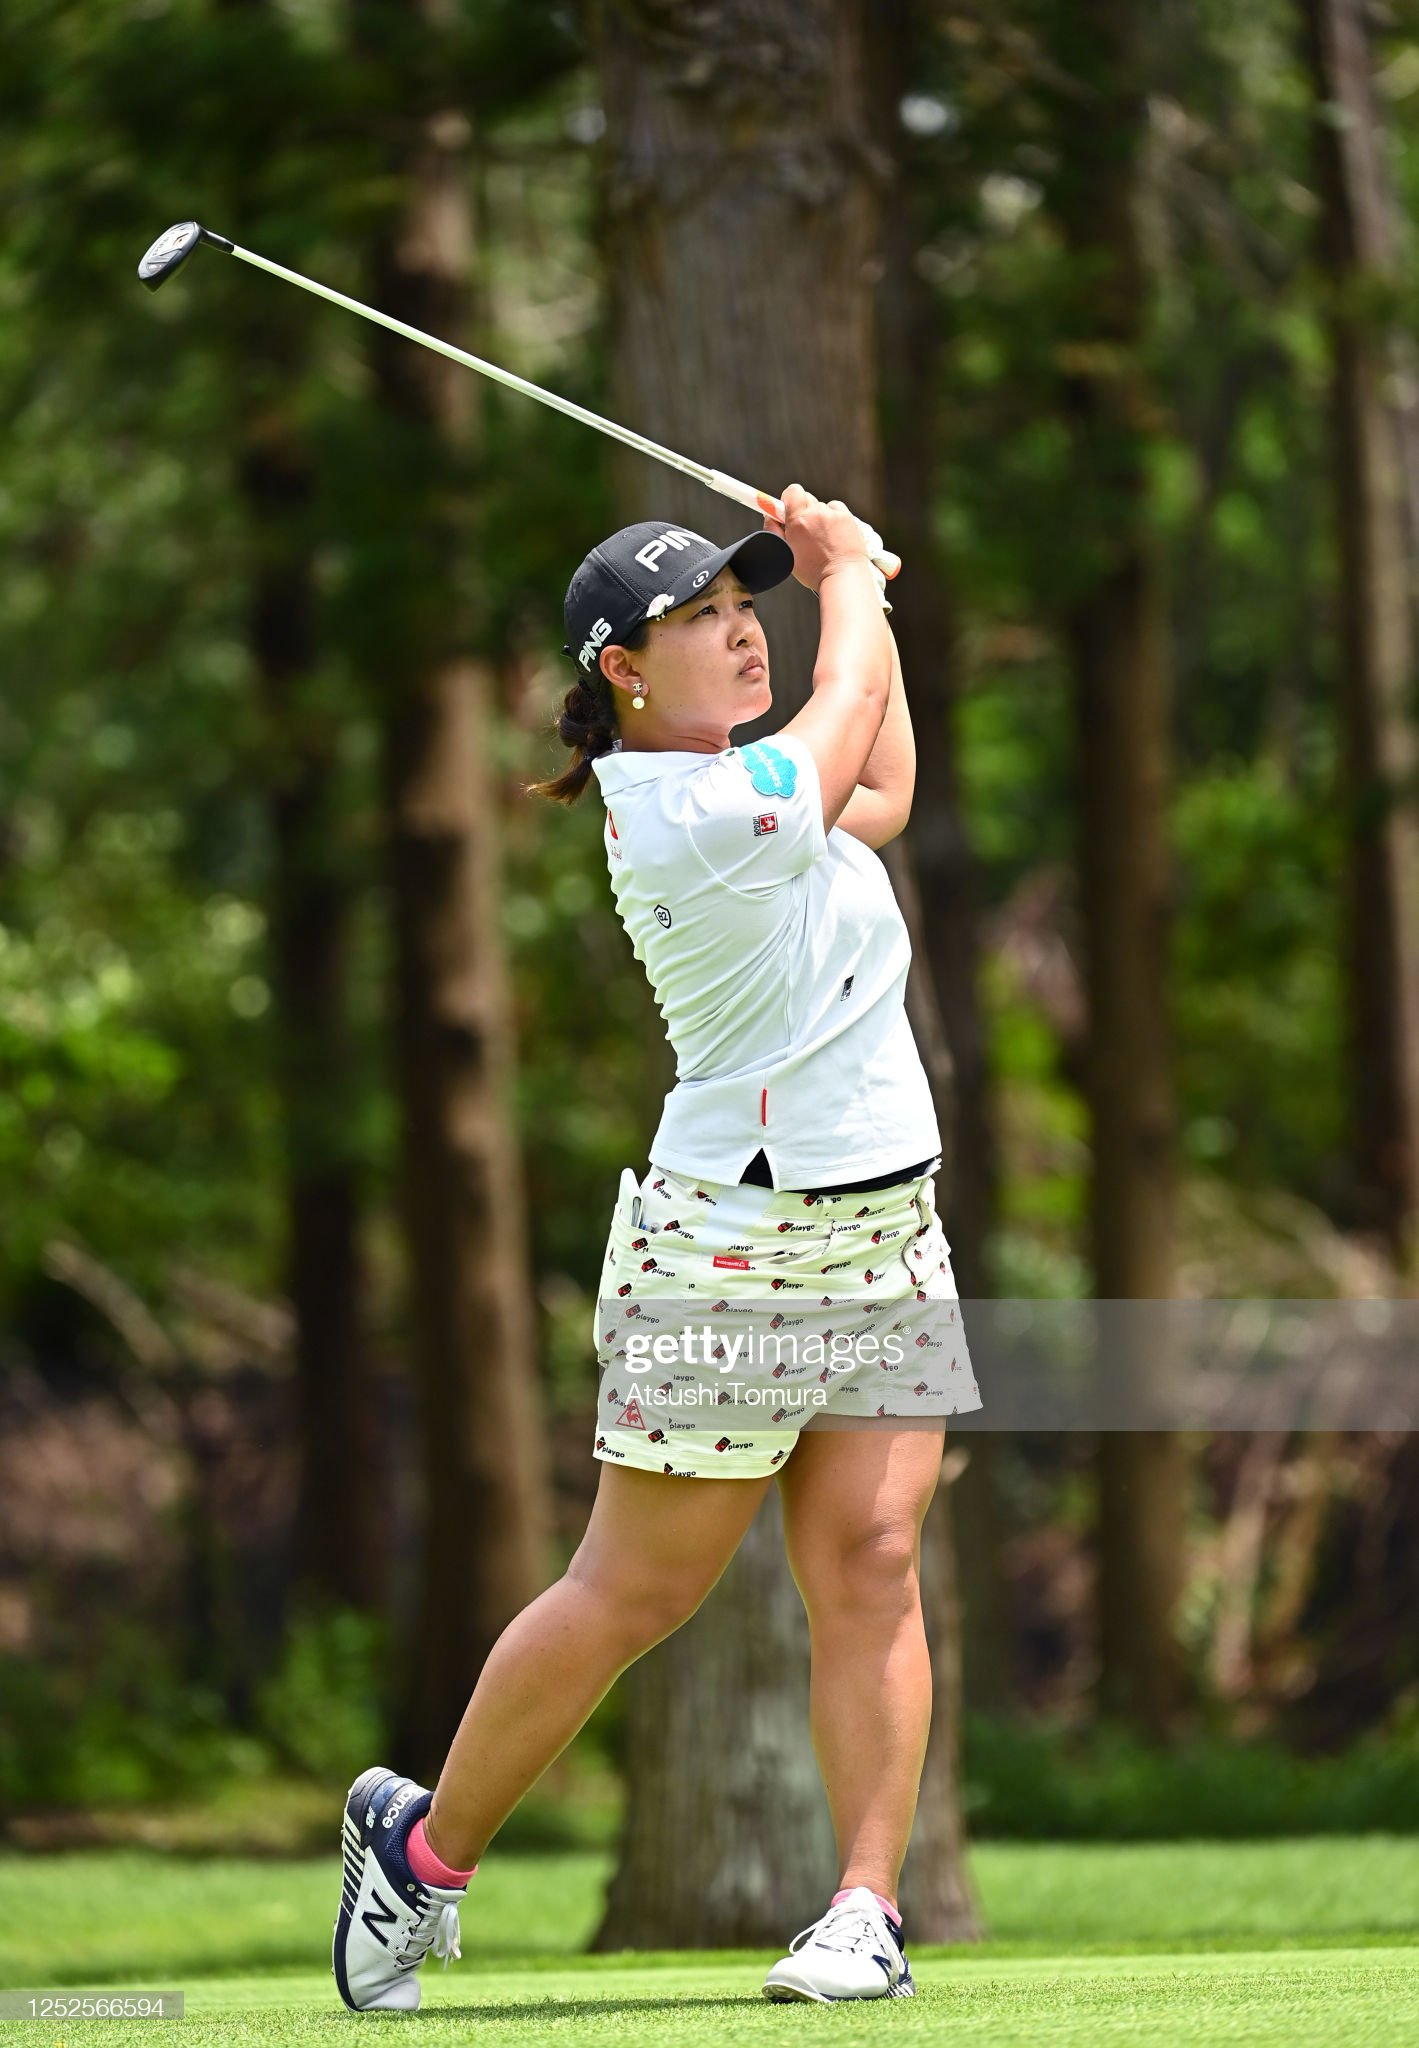 https://media.gettyimages.com/photos/ai-suzuki-of-japan-hits-her-tee-shot-on-the-9th-hole-during-the-of-picture-id1252566594?s=2048x2048